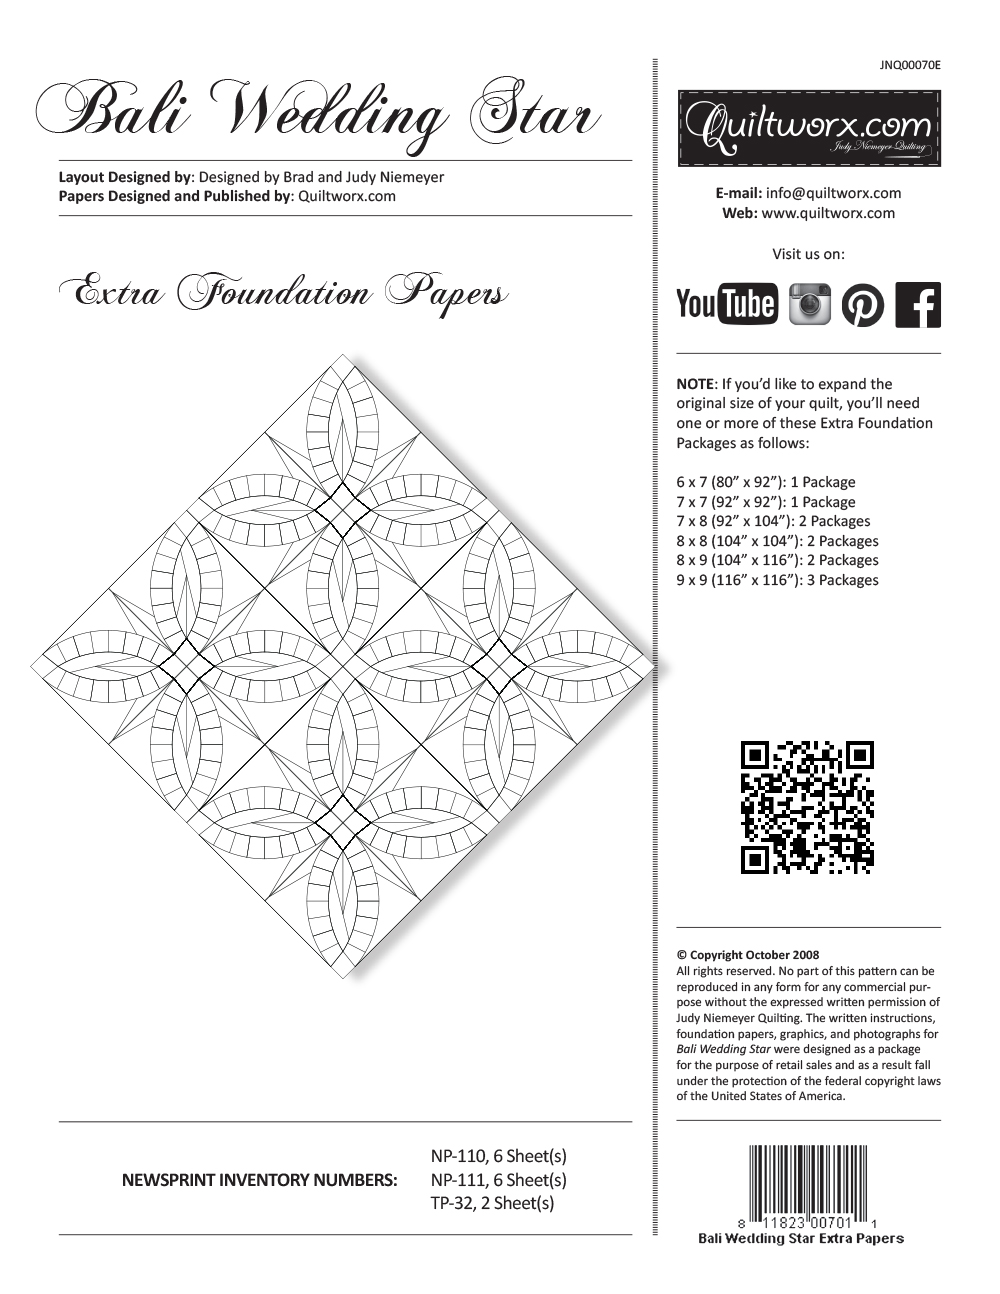 Cool 1 Year Experienced Java Resume Small 10 Commandment Coloring Pages Rectangular 1300 Resume Selection Criteria 18th Birthday Invitations Templates Old 1930s Newspaper Template Purple1st Birthday Invitation Template Bali Wedding Star